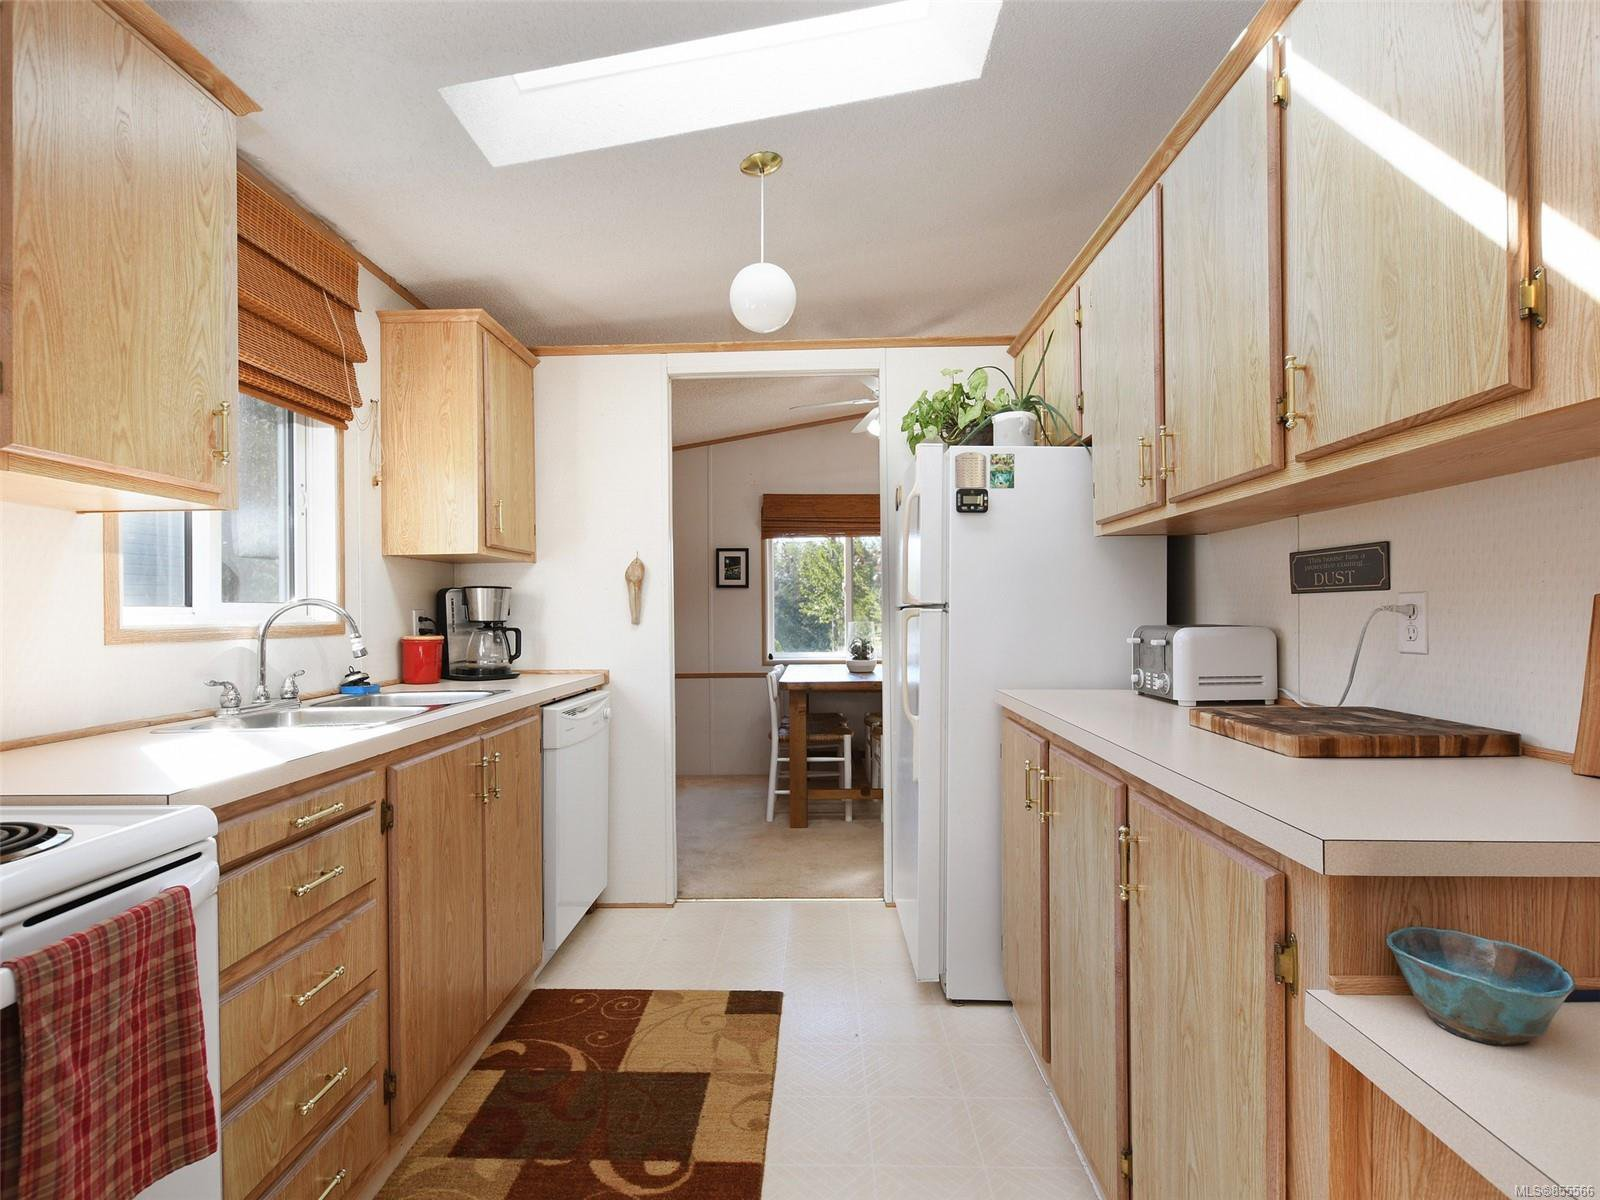 Photo 8: Photos: 28 7021 W Grant Rd in : Sk John Muir Manufactured Home for sale (Sooke)  : MLS®# 855566